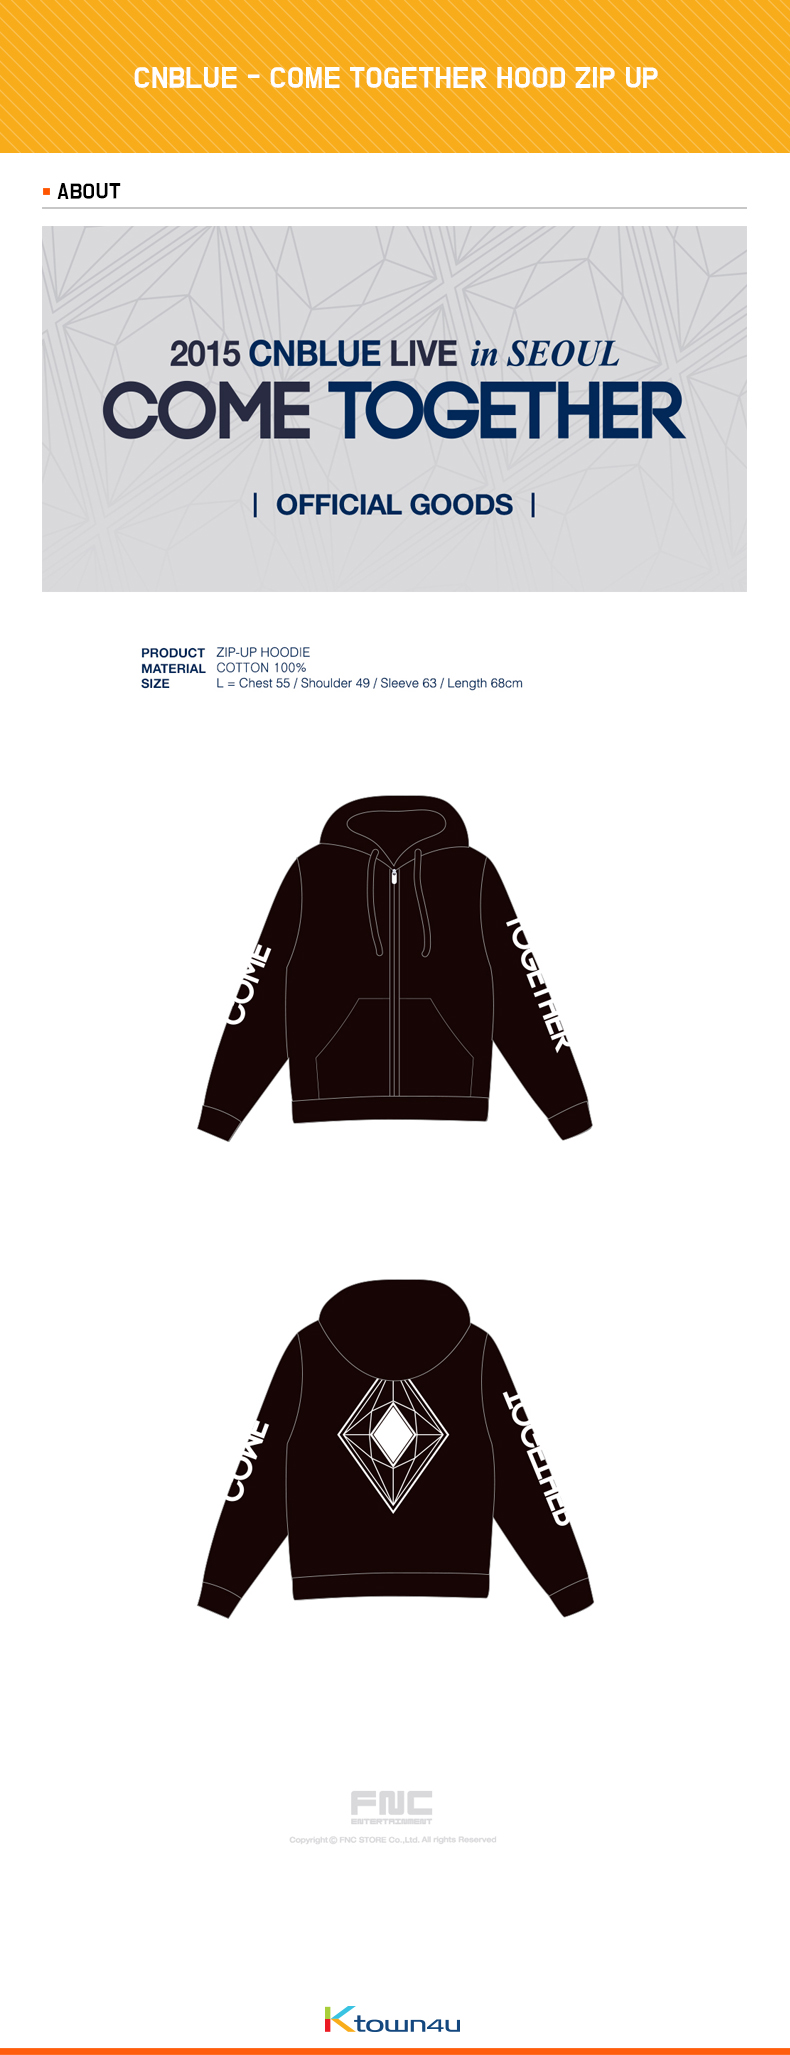 【FNC公式グッズ】CNBLUE (シエンブルー) : COME TOGETHER HOOD ZIP UP : フードジップアップ